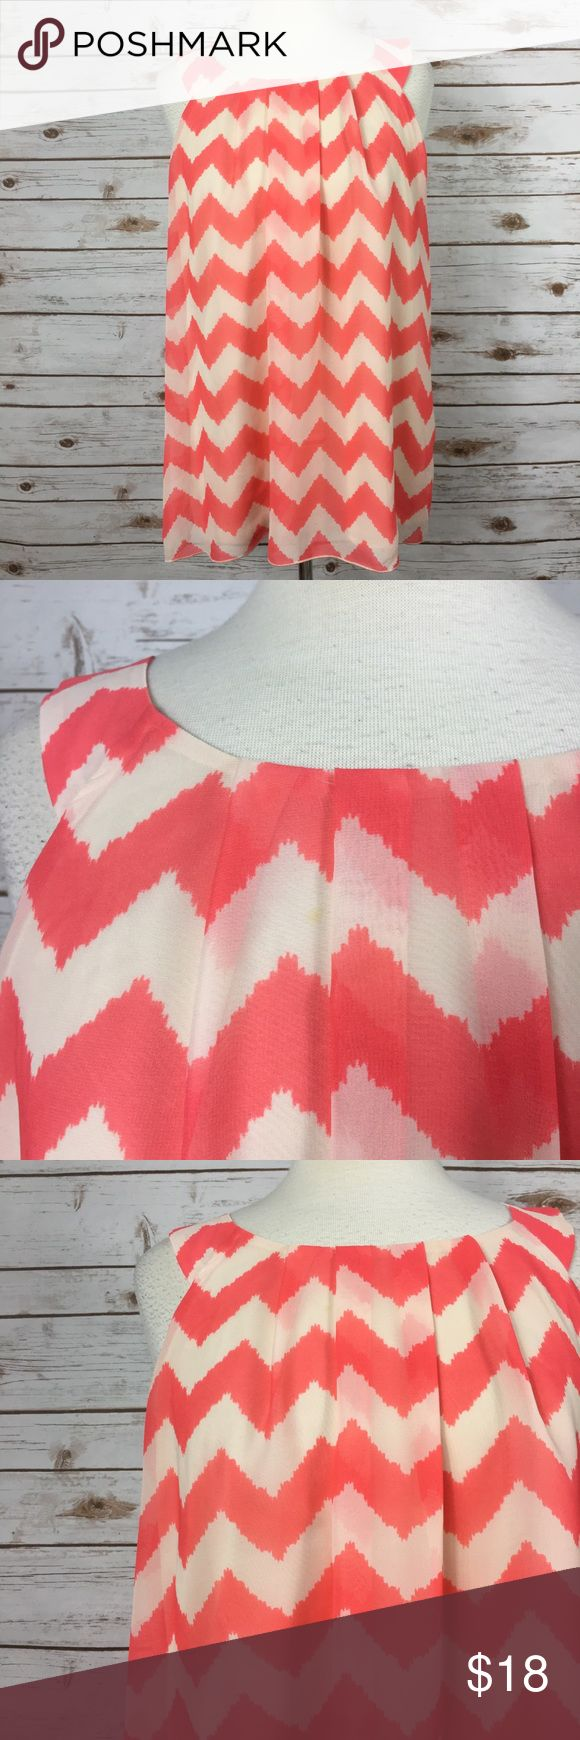 """Maurices Coral Chevron Sleeveless Blouse Fun and flirty coral chevron sleeveless tank by Maurices. • 28"""" long • 22"""" pit to pit • Small stain on front • Otherwise in good condition  🚭 Smoke-free home 📬 Ships by next day 💲 Price negotiable  🔁 Open to trades Maurices Tops Blouses"""